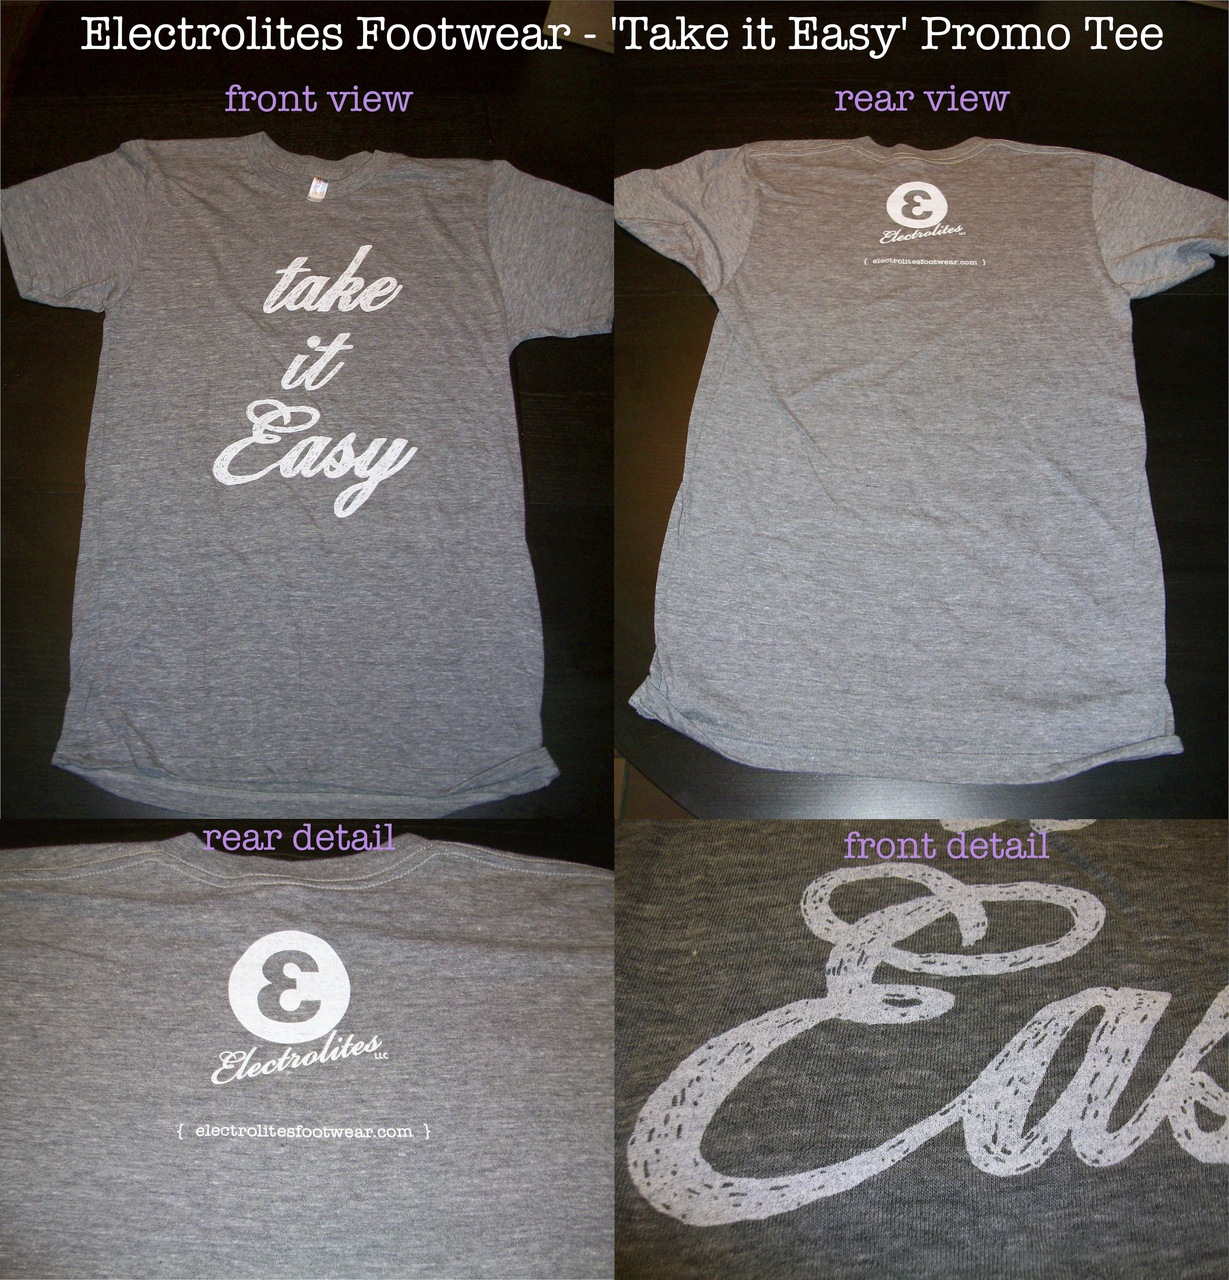 Here's some better quality photos of the limited promo tee. Get yours ASAP!